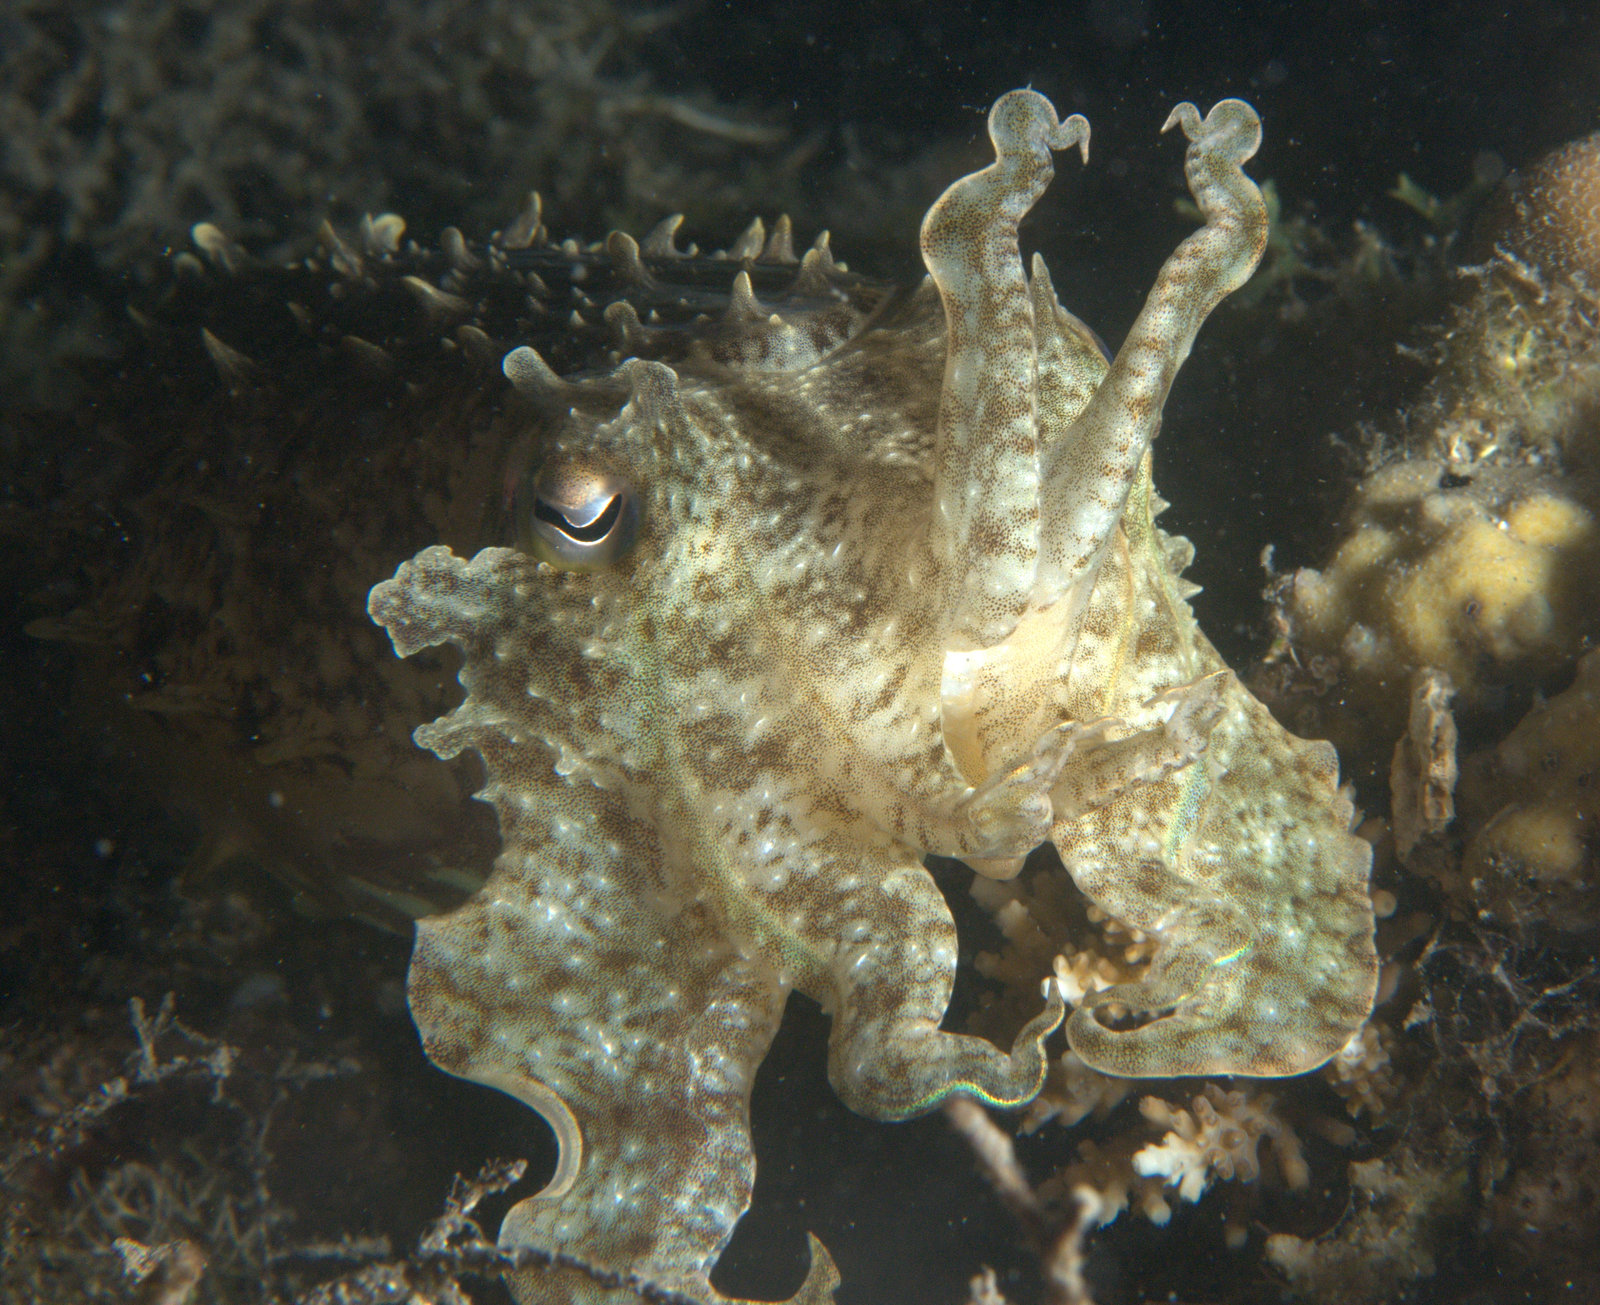 under pressure world: Broadclub Cuttlefish series- Anialo, Philippines